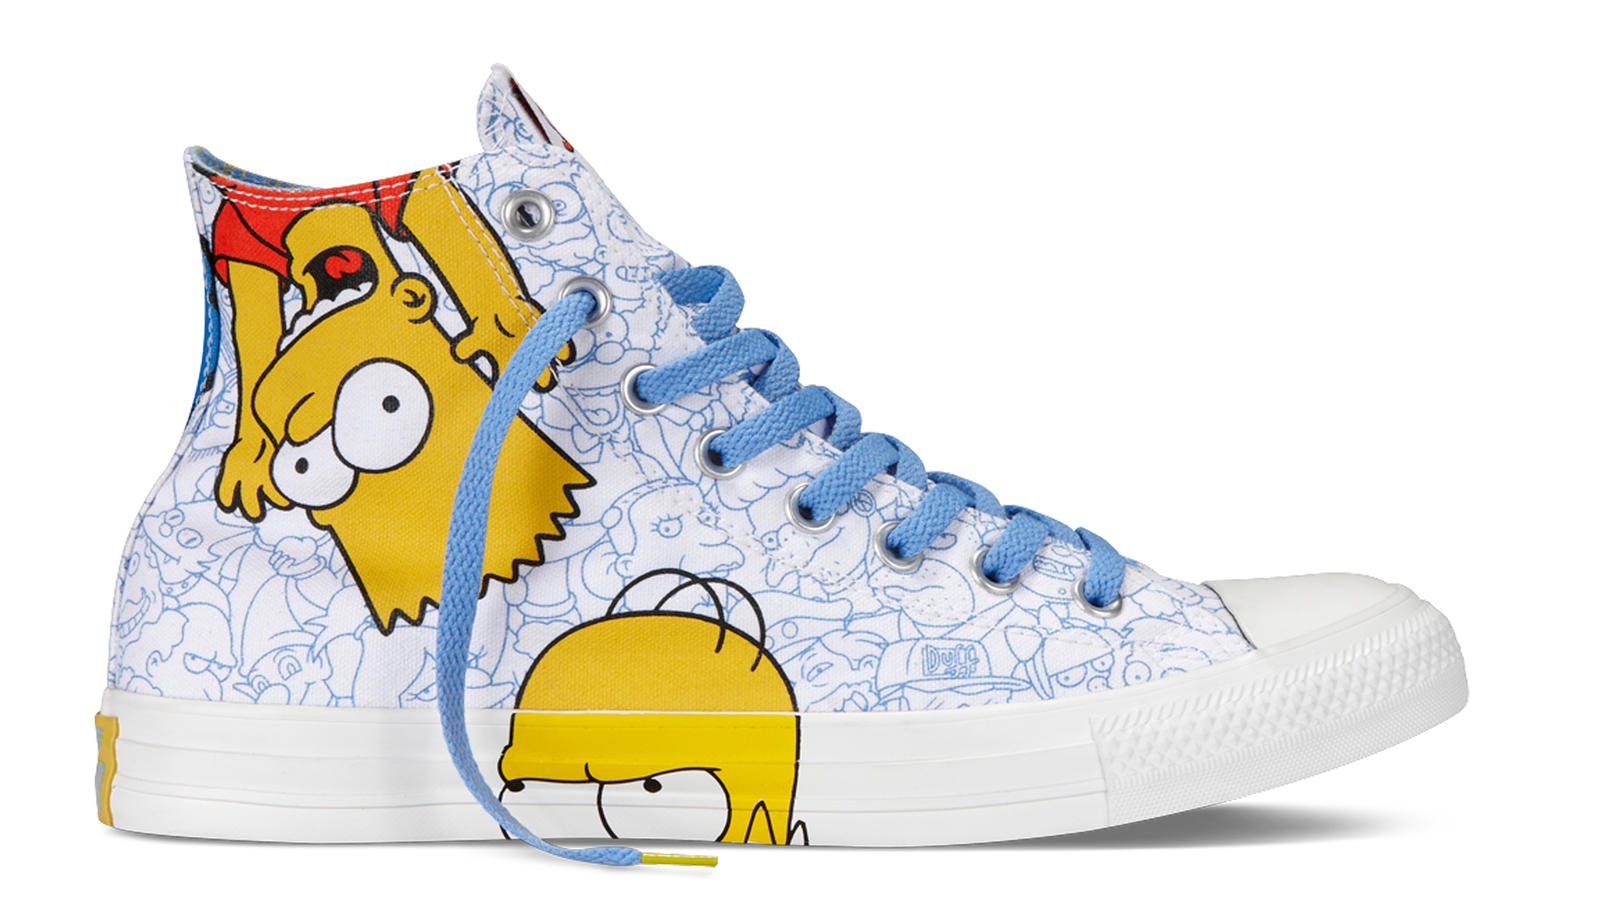 Converse Launches Footwear Collection